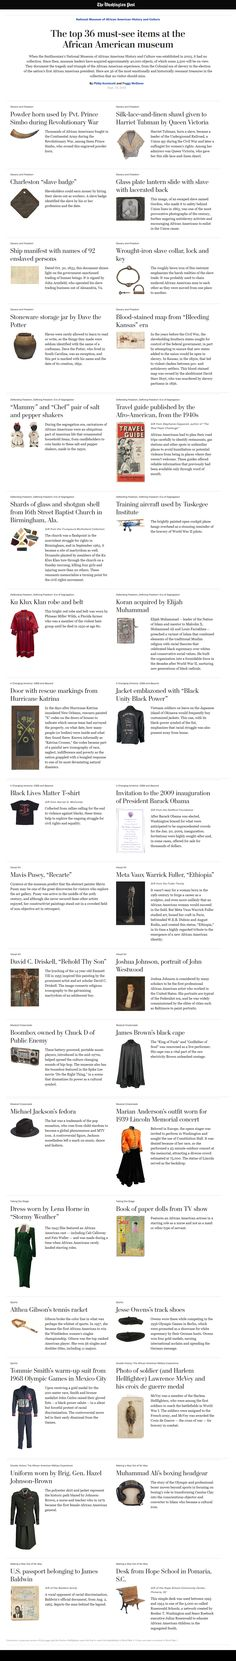 """The TOP 36 MUST-SEE Items at the African American Museum"" https://www.washingtonpost.com/graphics/lifestyle/national-museum-of-african-american-history-and-culture/must-see-exhibit-items/ #NationalMuseum of #AfricanAmerican #History & #Culture #NMAAHC 